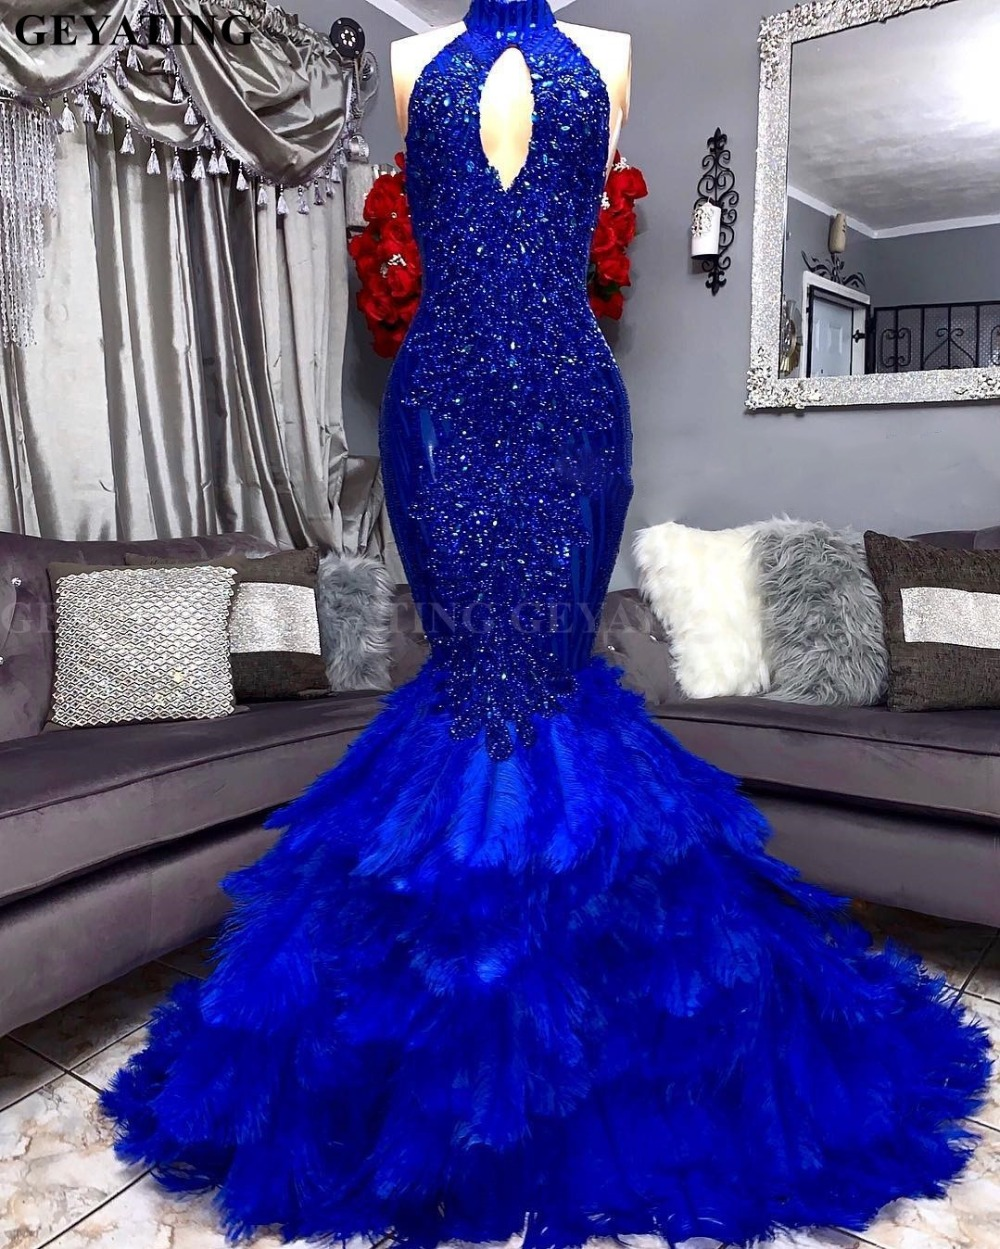 Royal Blue Feathers Mermaid Prom Dress 2019 Elegant Cut-out High Neck Applique Beaded Plus Size African Graduation Evening Gowns